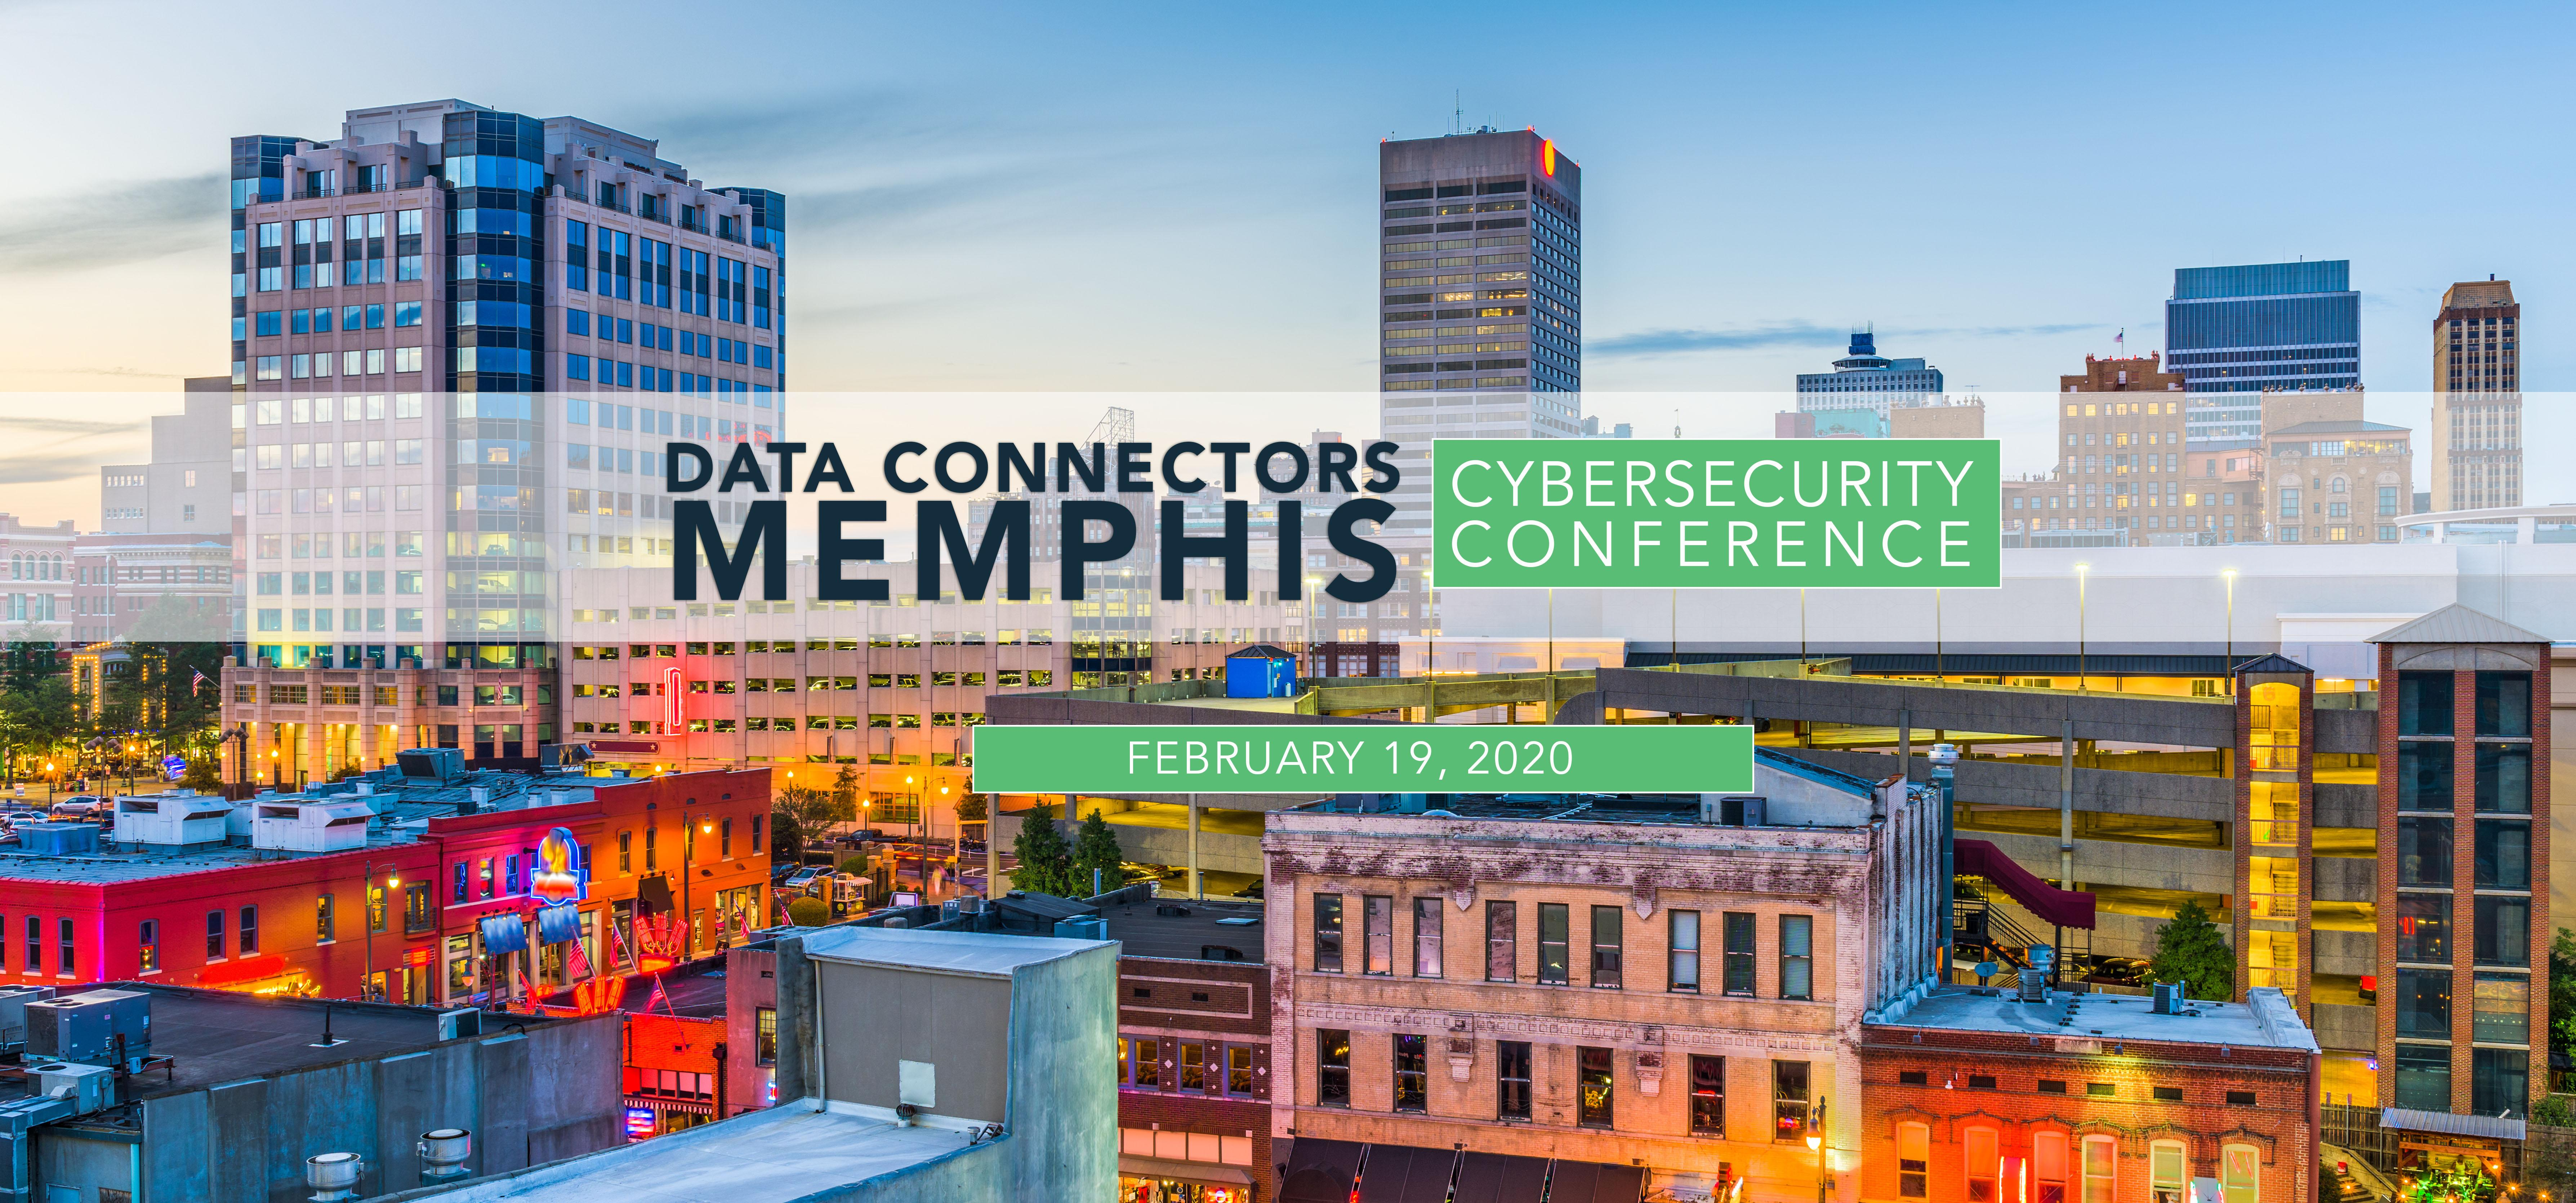 Data Connectors Memphis Cybersecurity Conference 2020